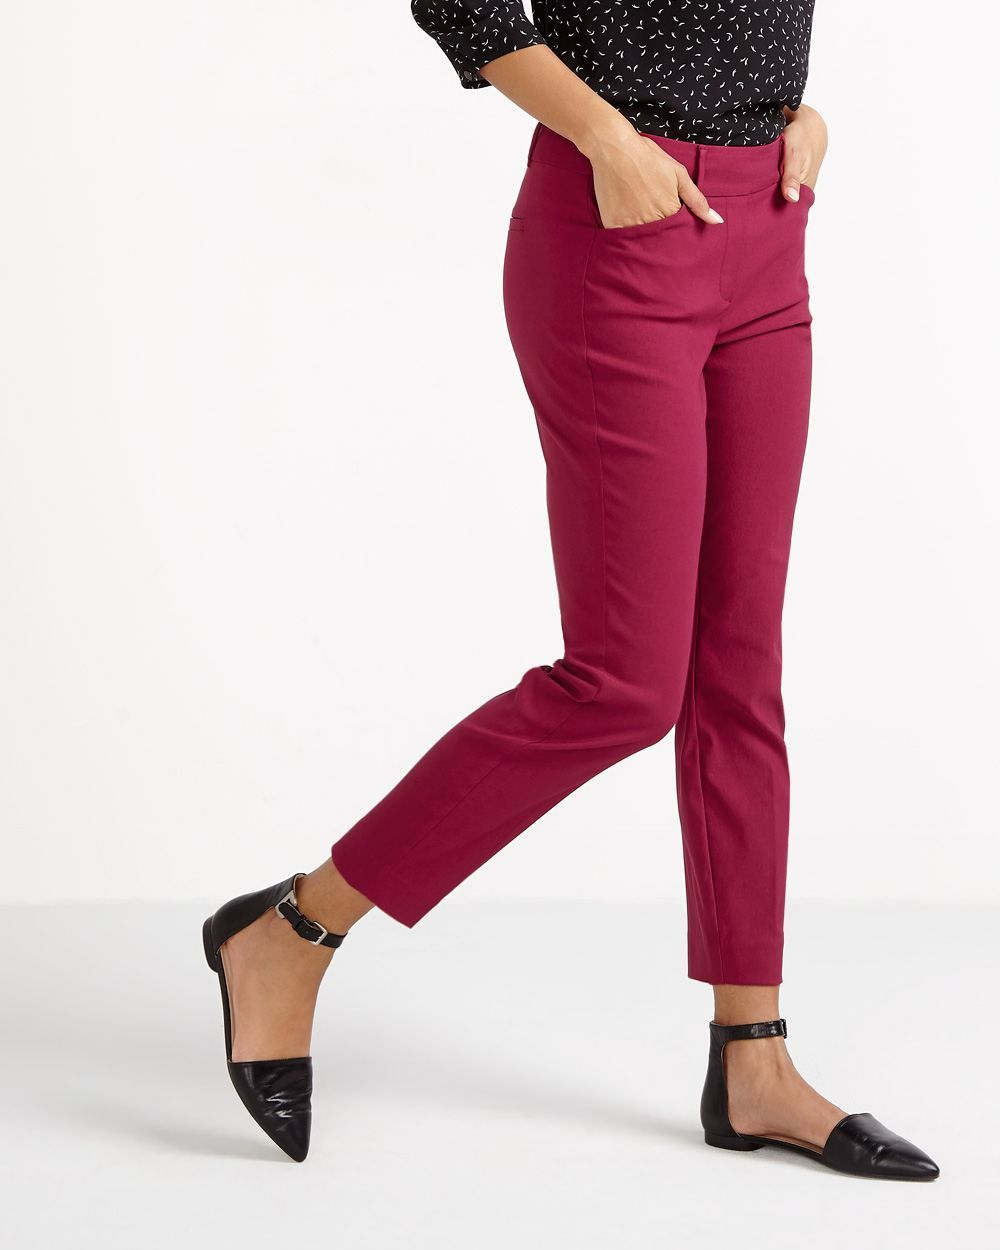 The Petite Iconic Ankle Pants combine an elegant look with a relaxed feel. The cropped length is flattering and ideal to show off stylish footwear. These pants are perfect with a crisp shirt or a printed blouse.